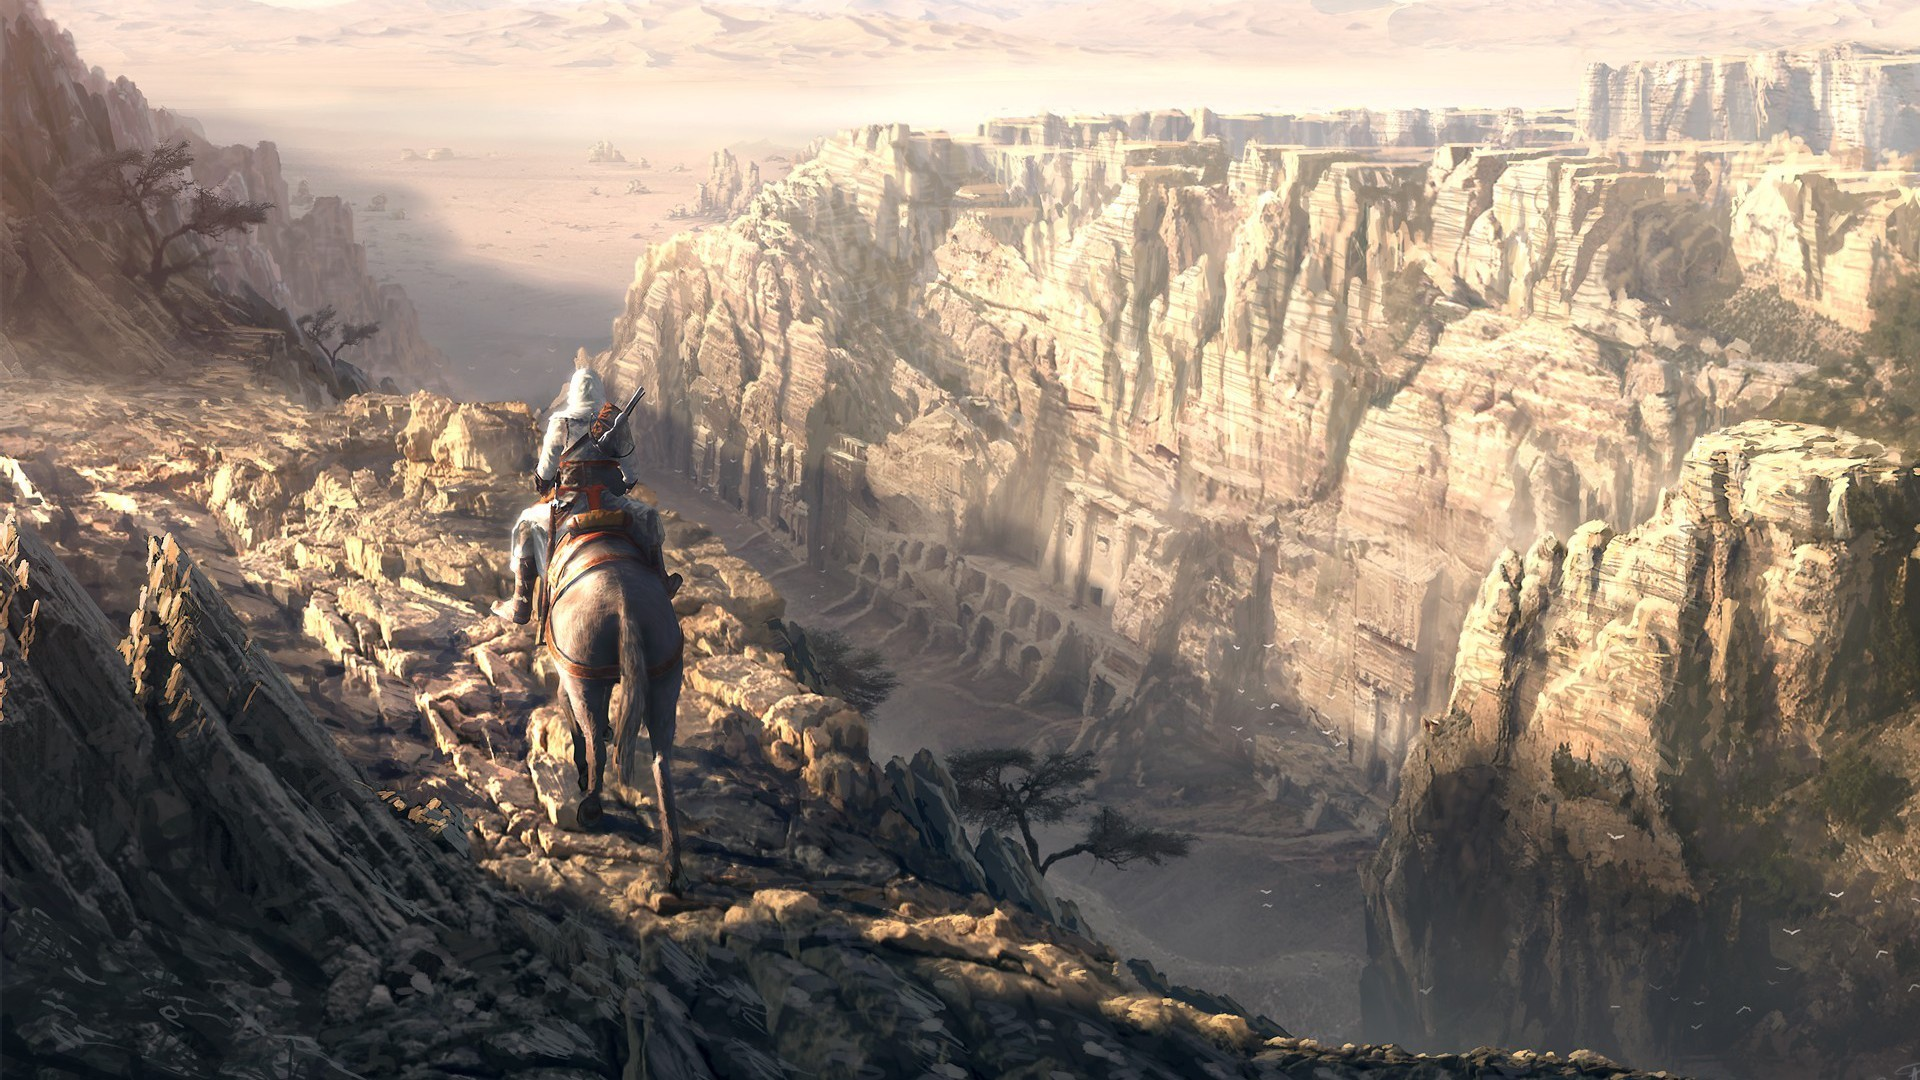 Mountains Landscapes assassins creed